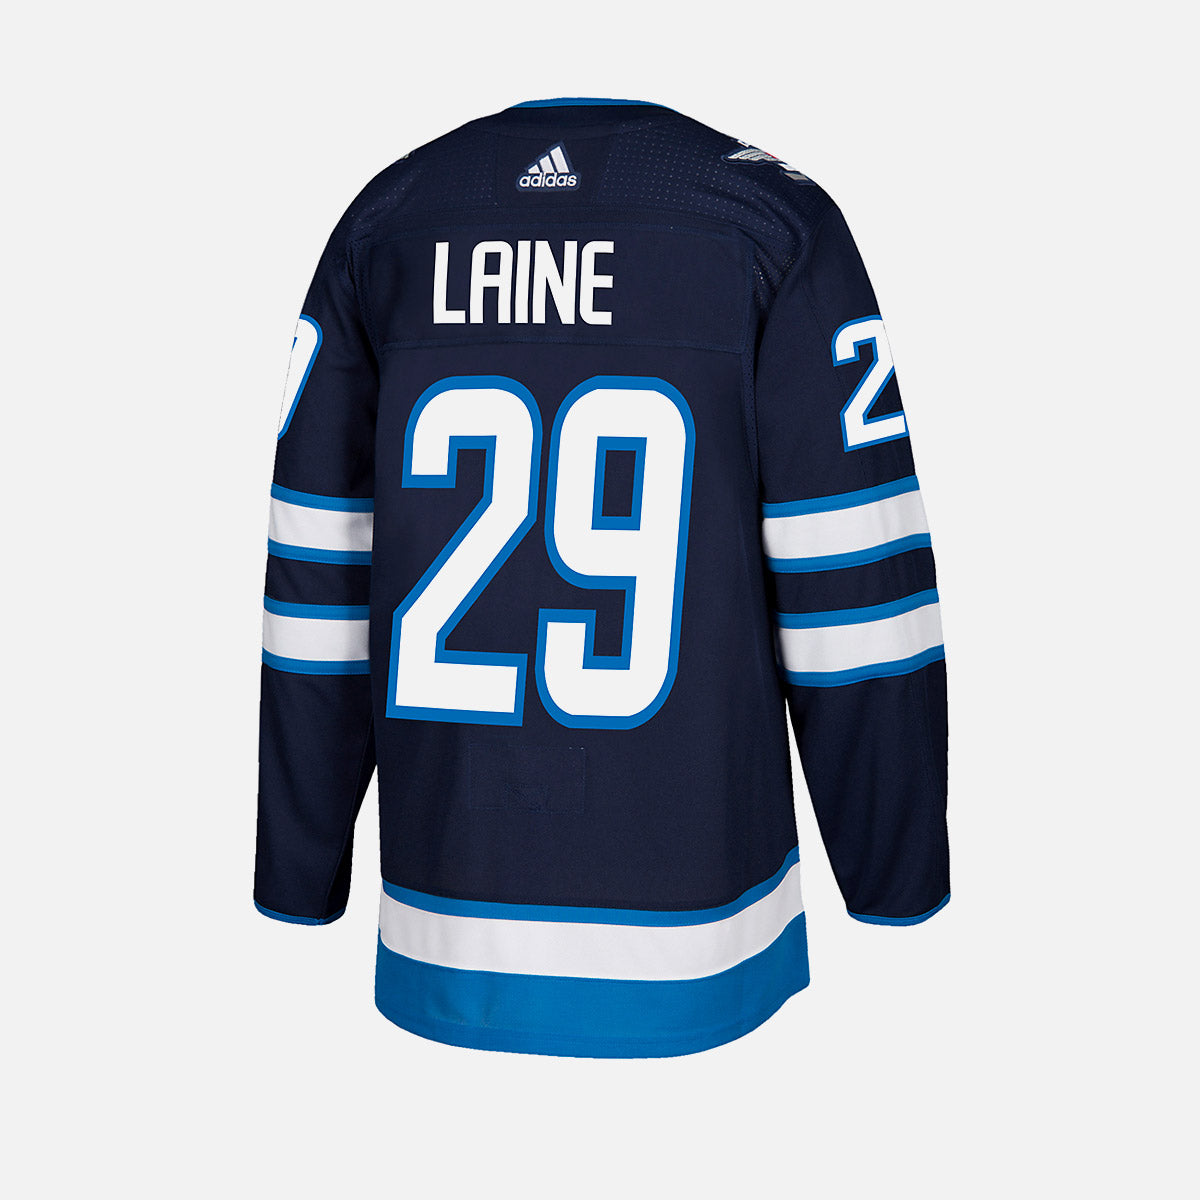 39ec612e595 Winnipeg Jets Adidas Authentic Senior Patrik Laine Jersey – The ...